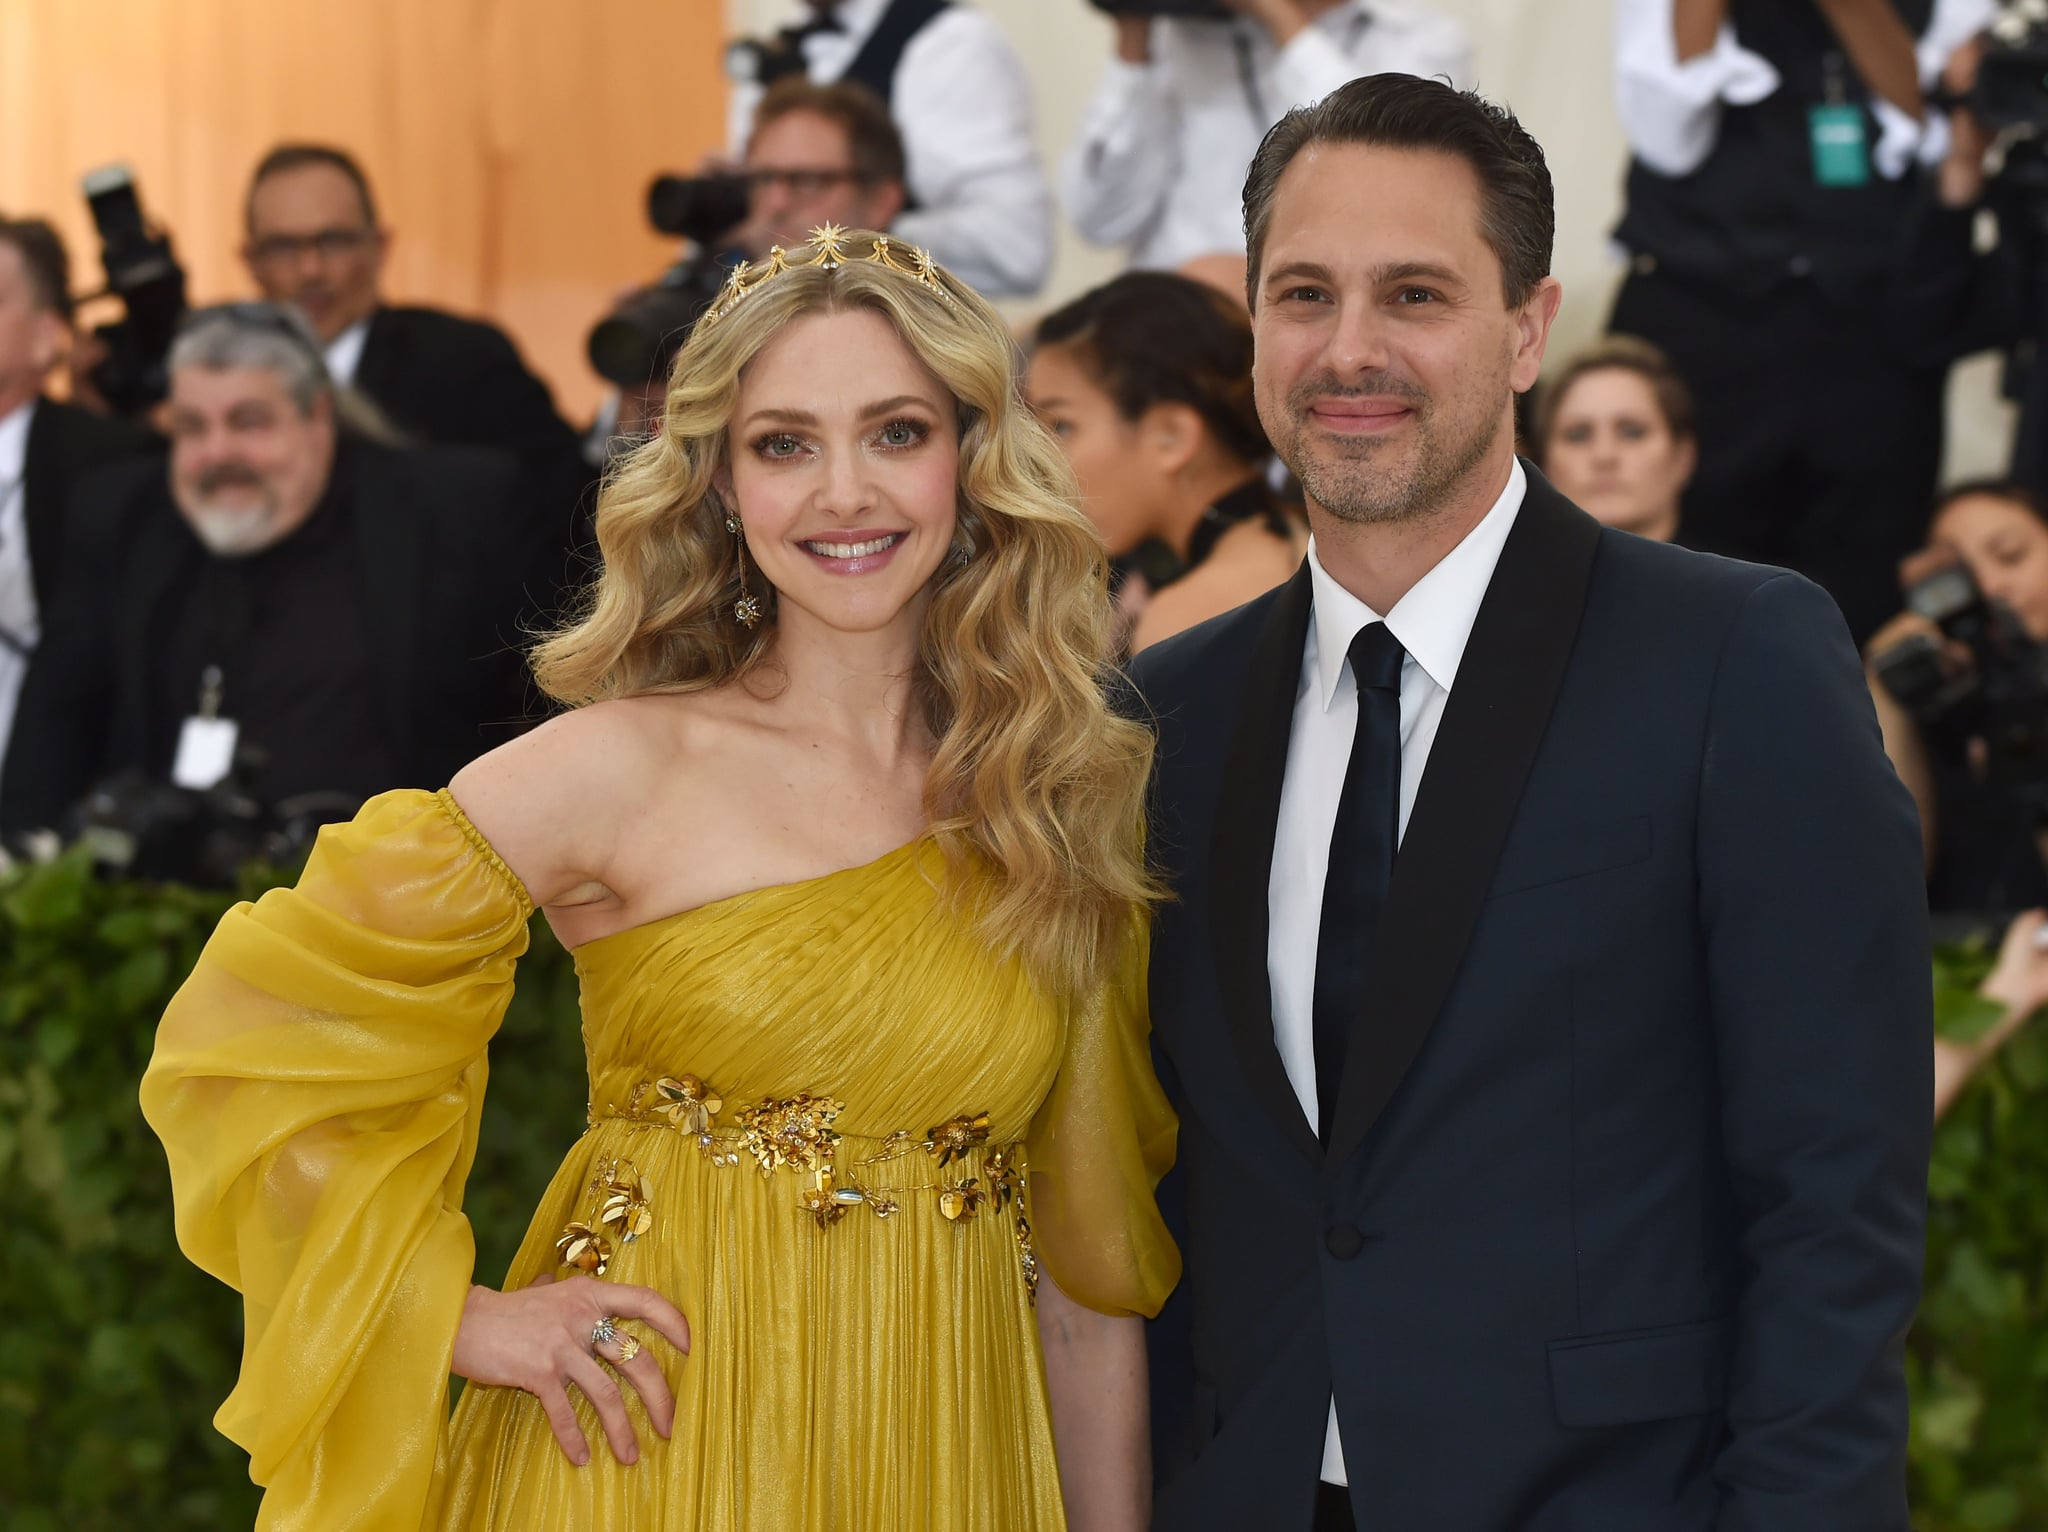 Amanda Seyfried and Thomas Sadoski arrive for the 2018 Met Gala on May 7, 2018, at the Metropolitan Museum of Art in New York. - The Gala raises money for the Metropolitan Museum of Arts Costume Institute. The Gala's 2018 theme is Heavenly Bodies: Fashion and the Catholic Imagination. (Photo by Hector RETAMAL / AFP)        (Photo credit should read HECTOR RETAMAL/AFP/Getty Images)